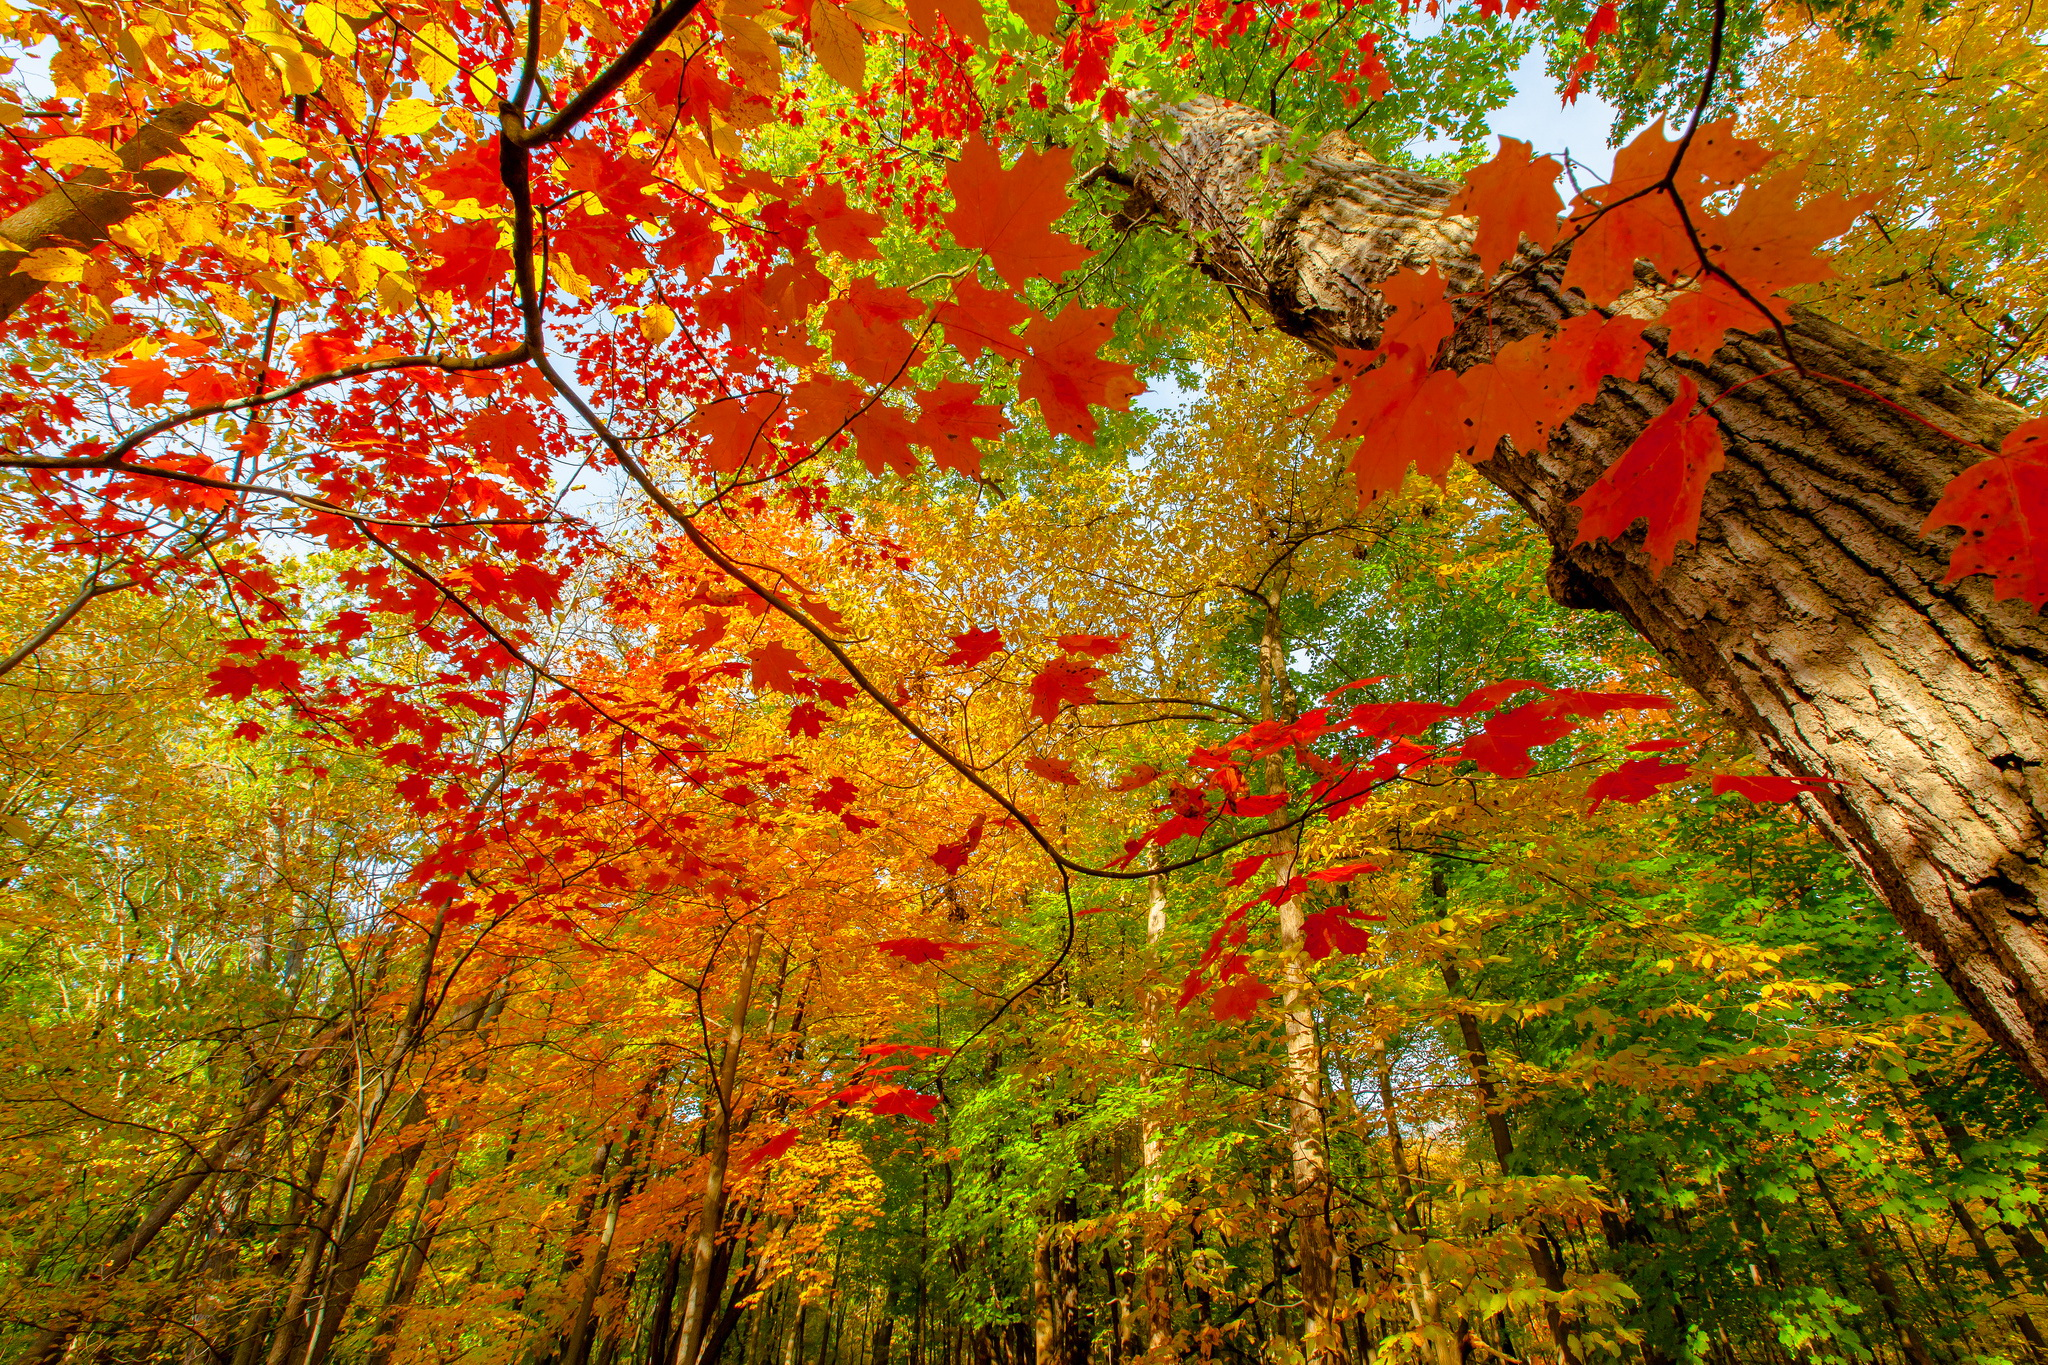 Colorful Leaves Wallpaper 30079 2048x1365 px ~ HDWallSource.com